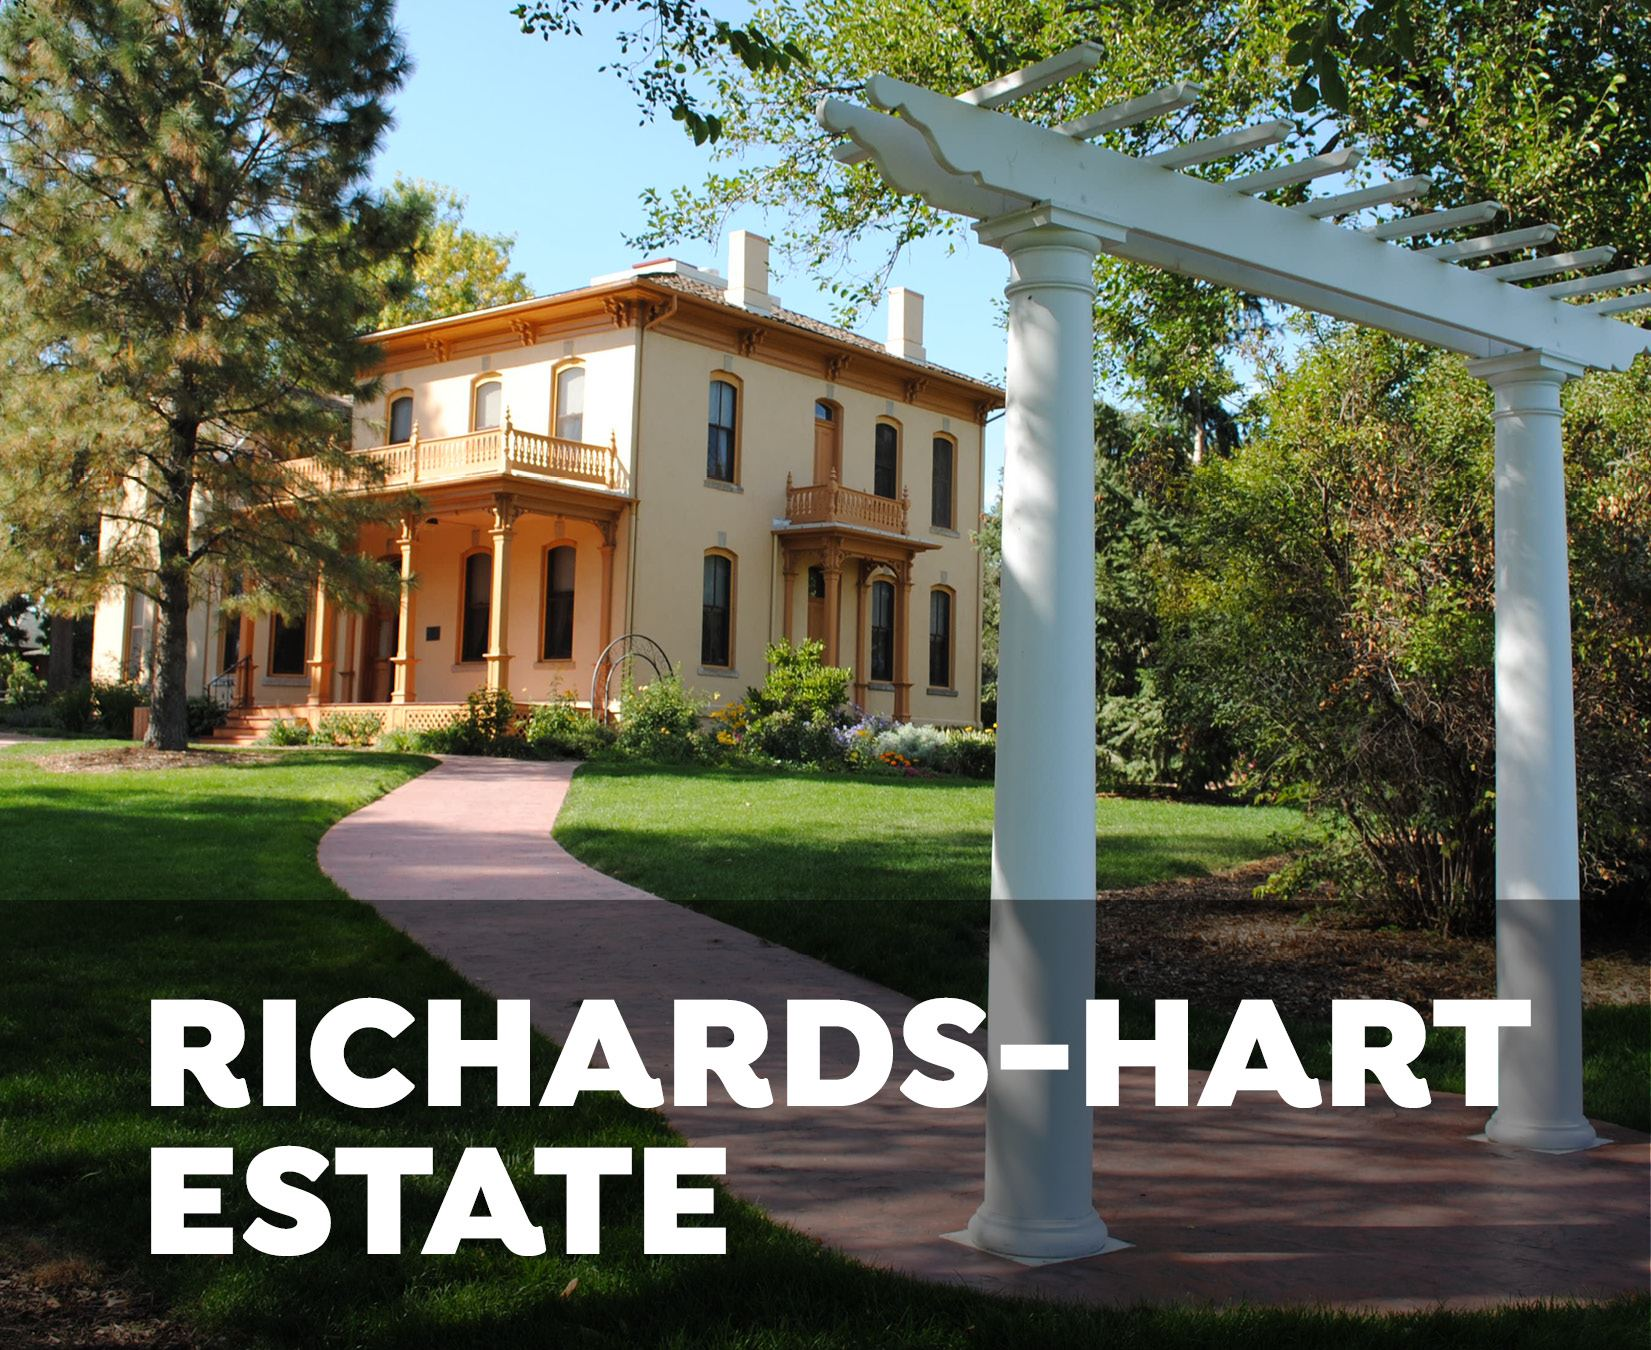 Richards-Hart Estate wedding arbor